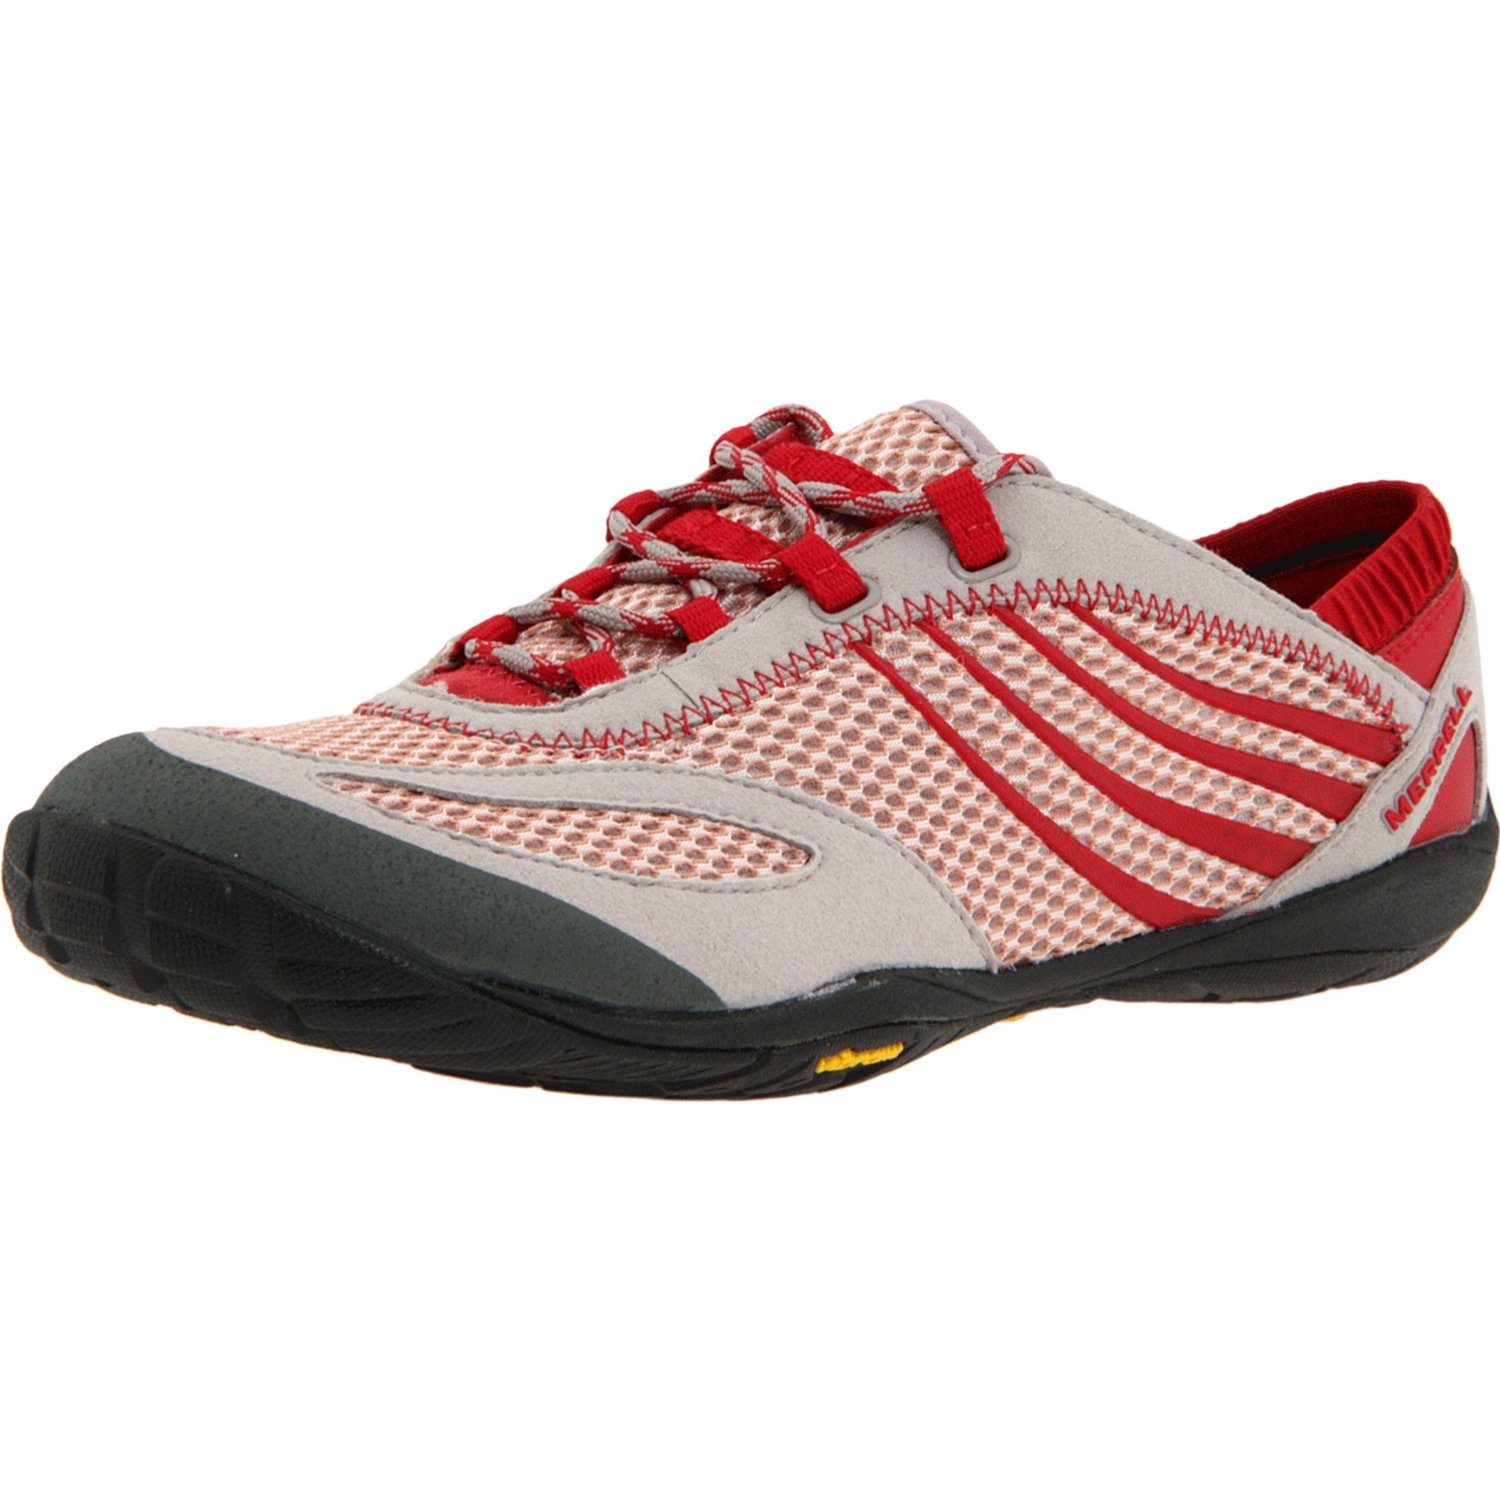 Merrell Dash Glove, Women's Running Shoes, J55750, Apollo, 4 UK